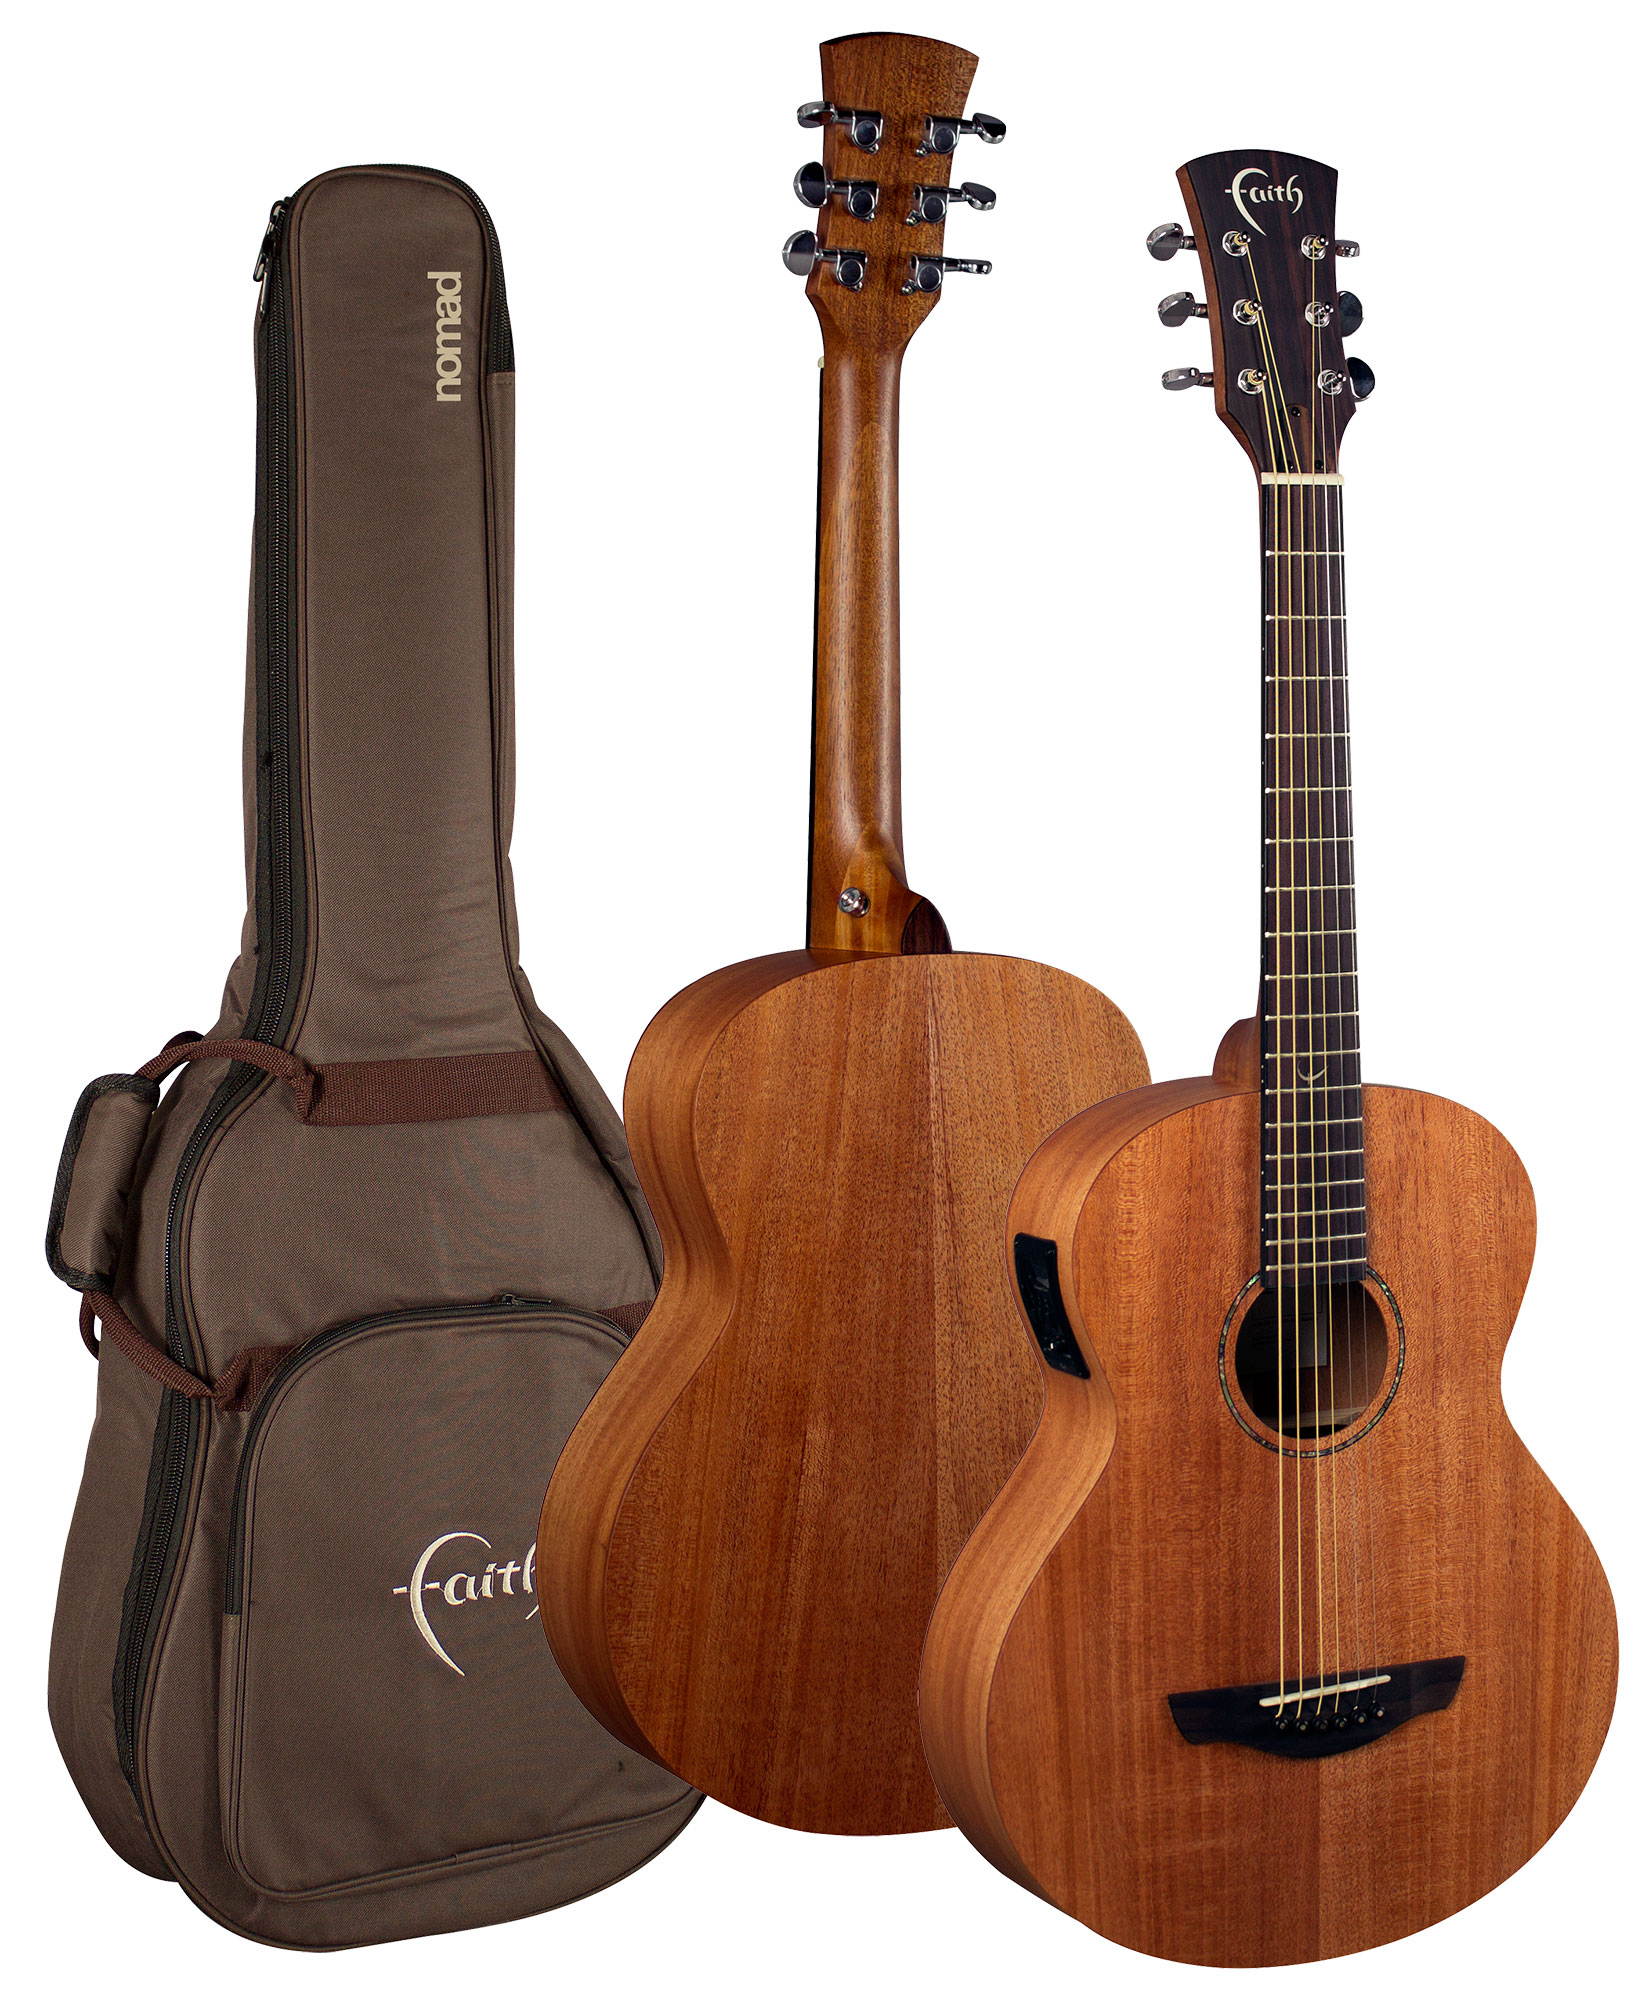 small travel guitars guitar collection ideas